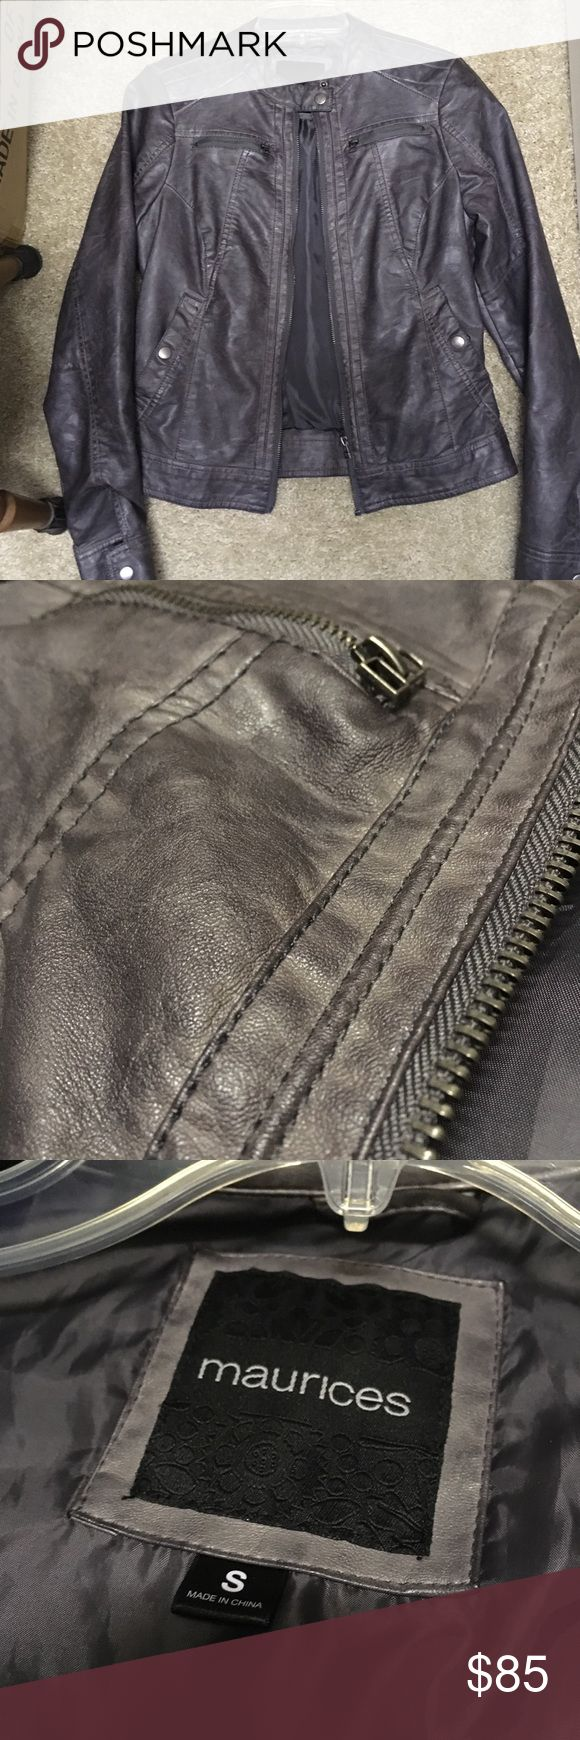 Medium Gray Bomber Jacket Worn once - faux leather   Remember Poshmark takes 20% of the sale.  -Pet Free / Smoke Free -Bundles Encouraged -Final Sale, no exception -No holds / trades -No offers in comments will be accepted.  Willing to negotiate. I don't consider 30, 40, 50% off as a reasonable offer. Again, remember Poshmark takes 20%. Please view the chart for reasonable offer amounts. Anything in the TWO LEFT green columns I'll accept, anything else I consider a low ball offer and will…